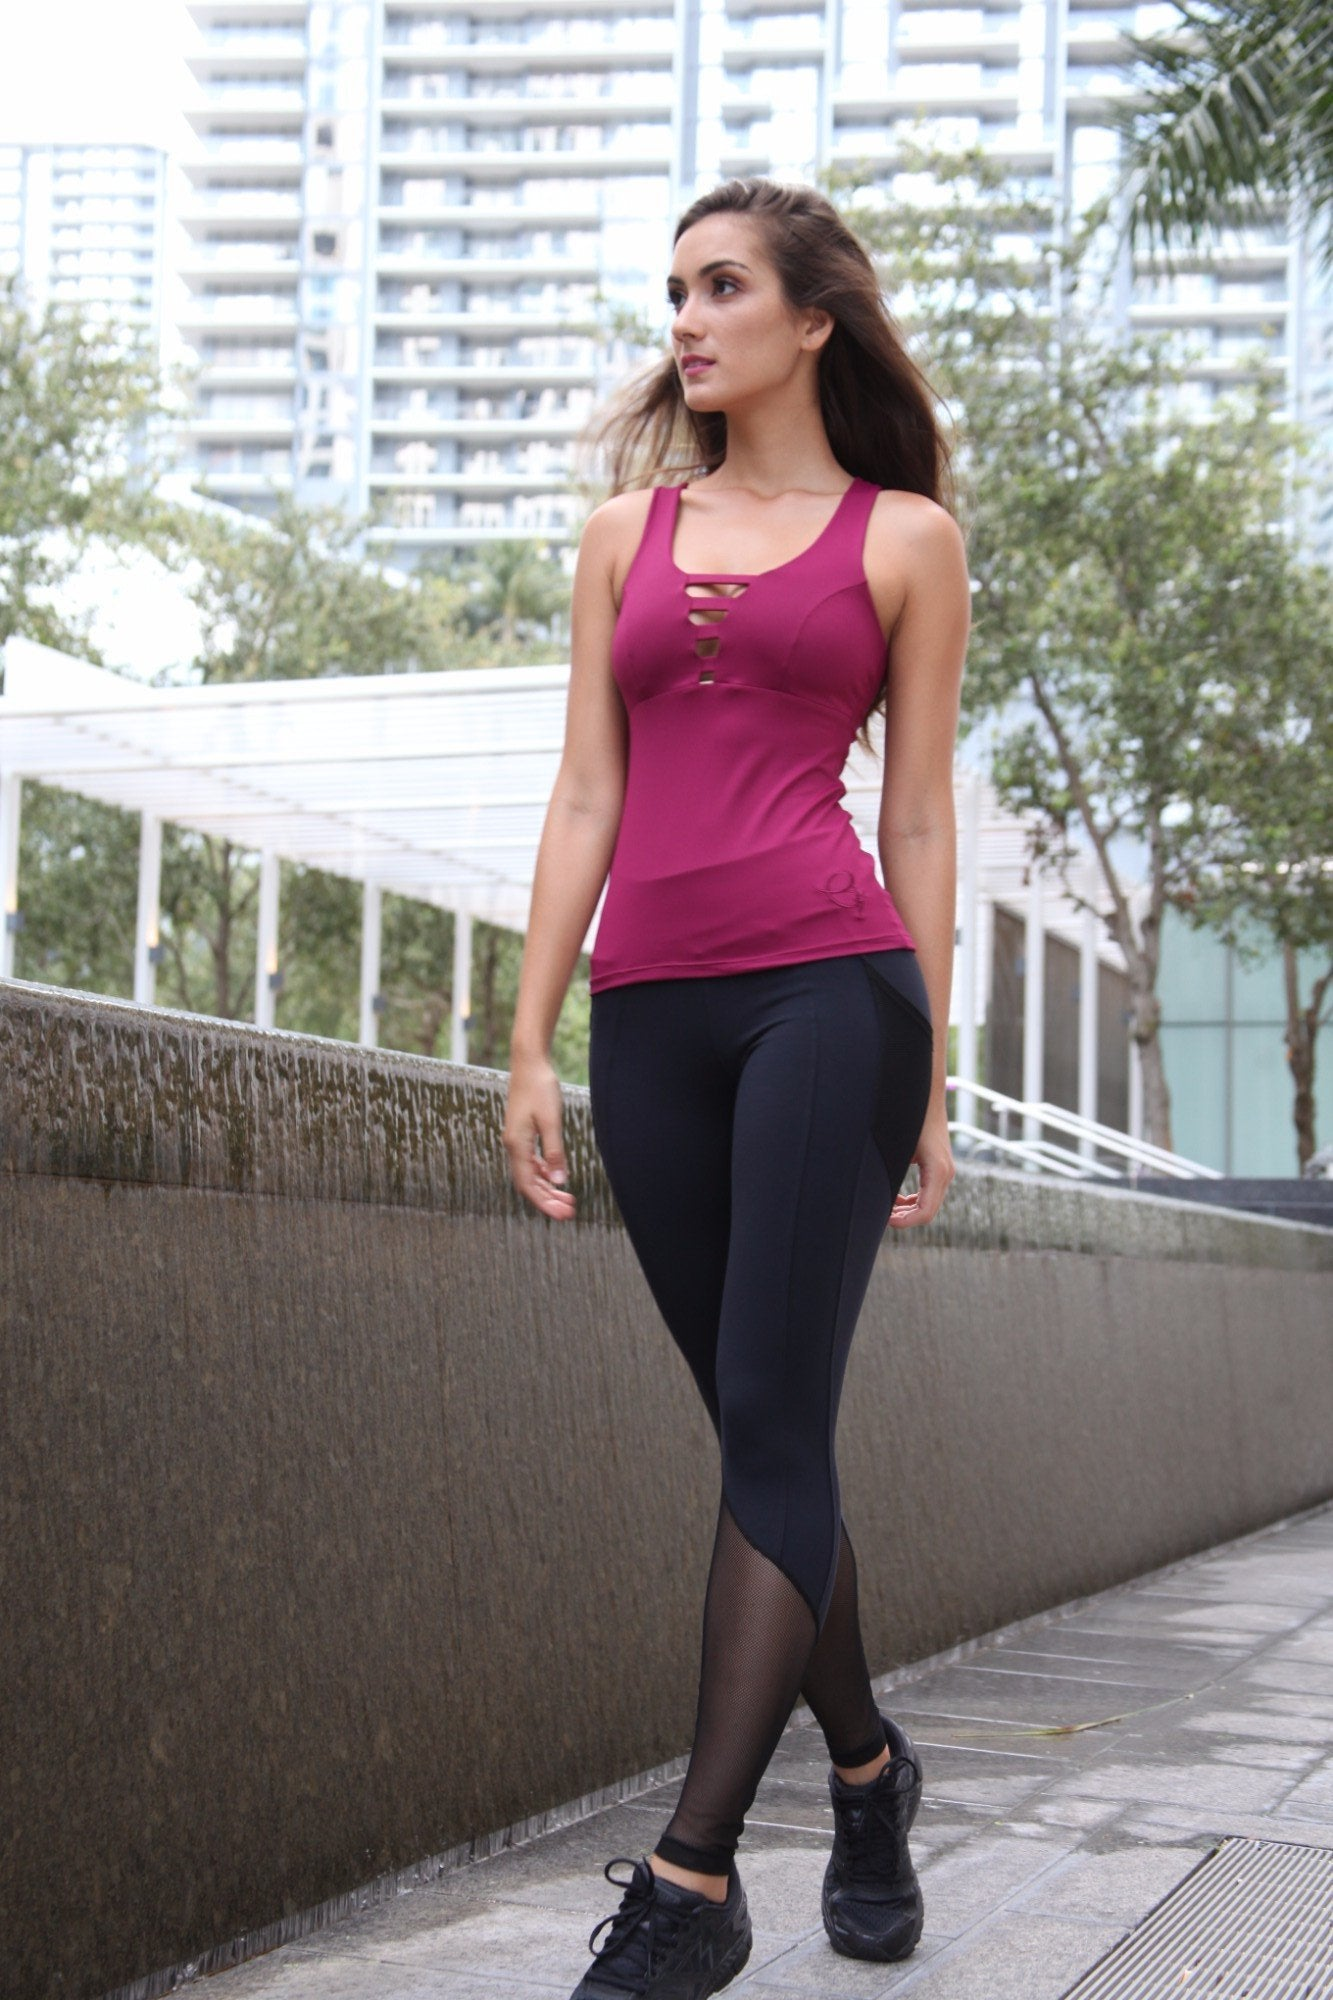 Designer Pink Long Tank Top with Cross Back Strap LT1124 - Equilibrium Activewear - Image 3